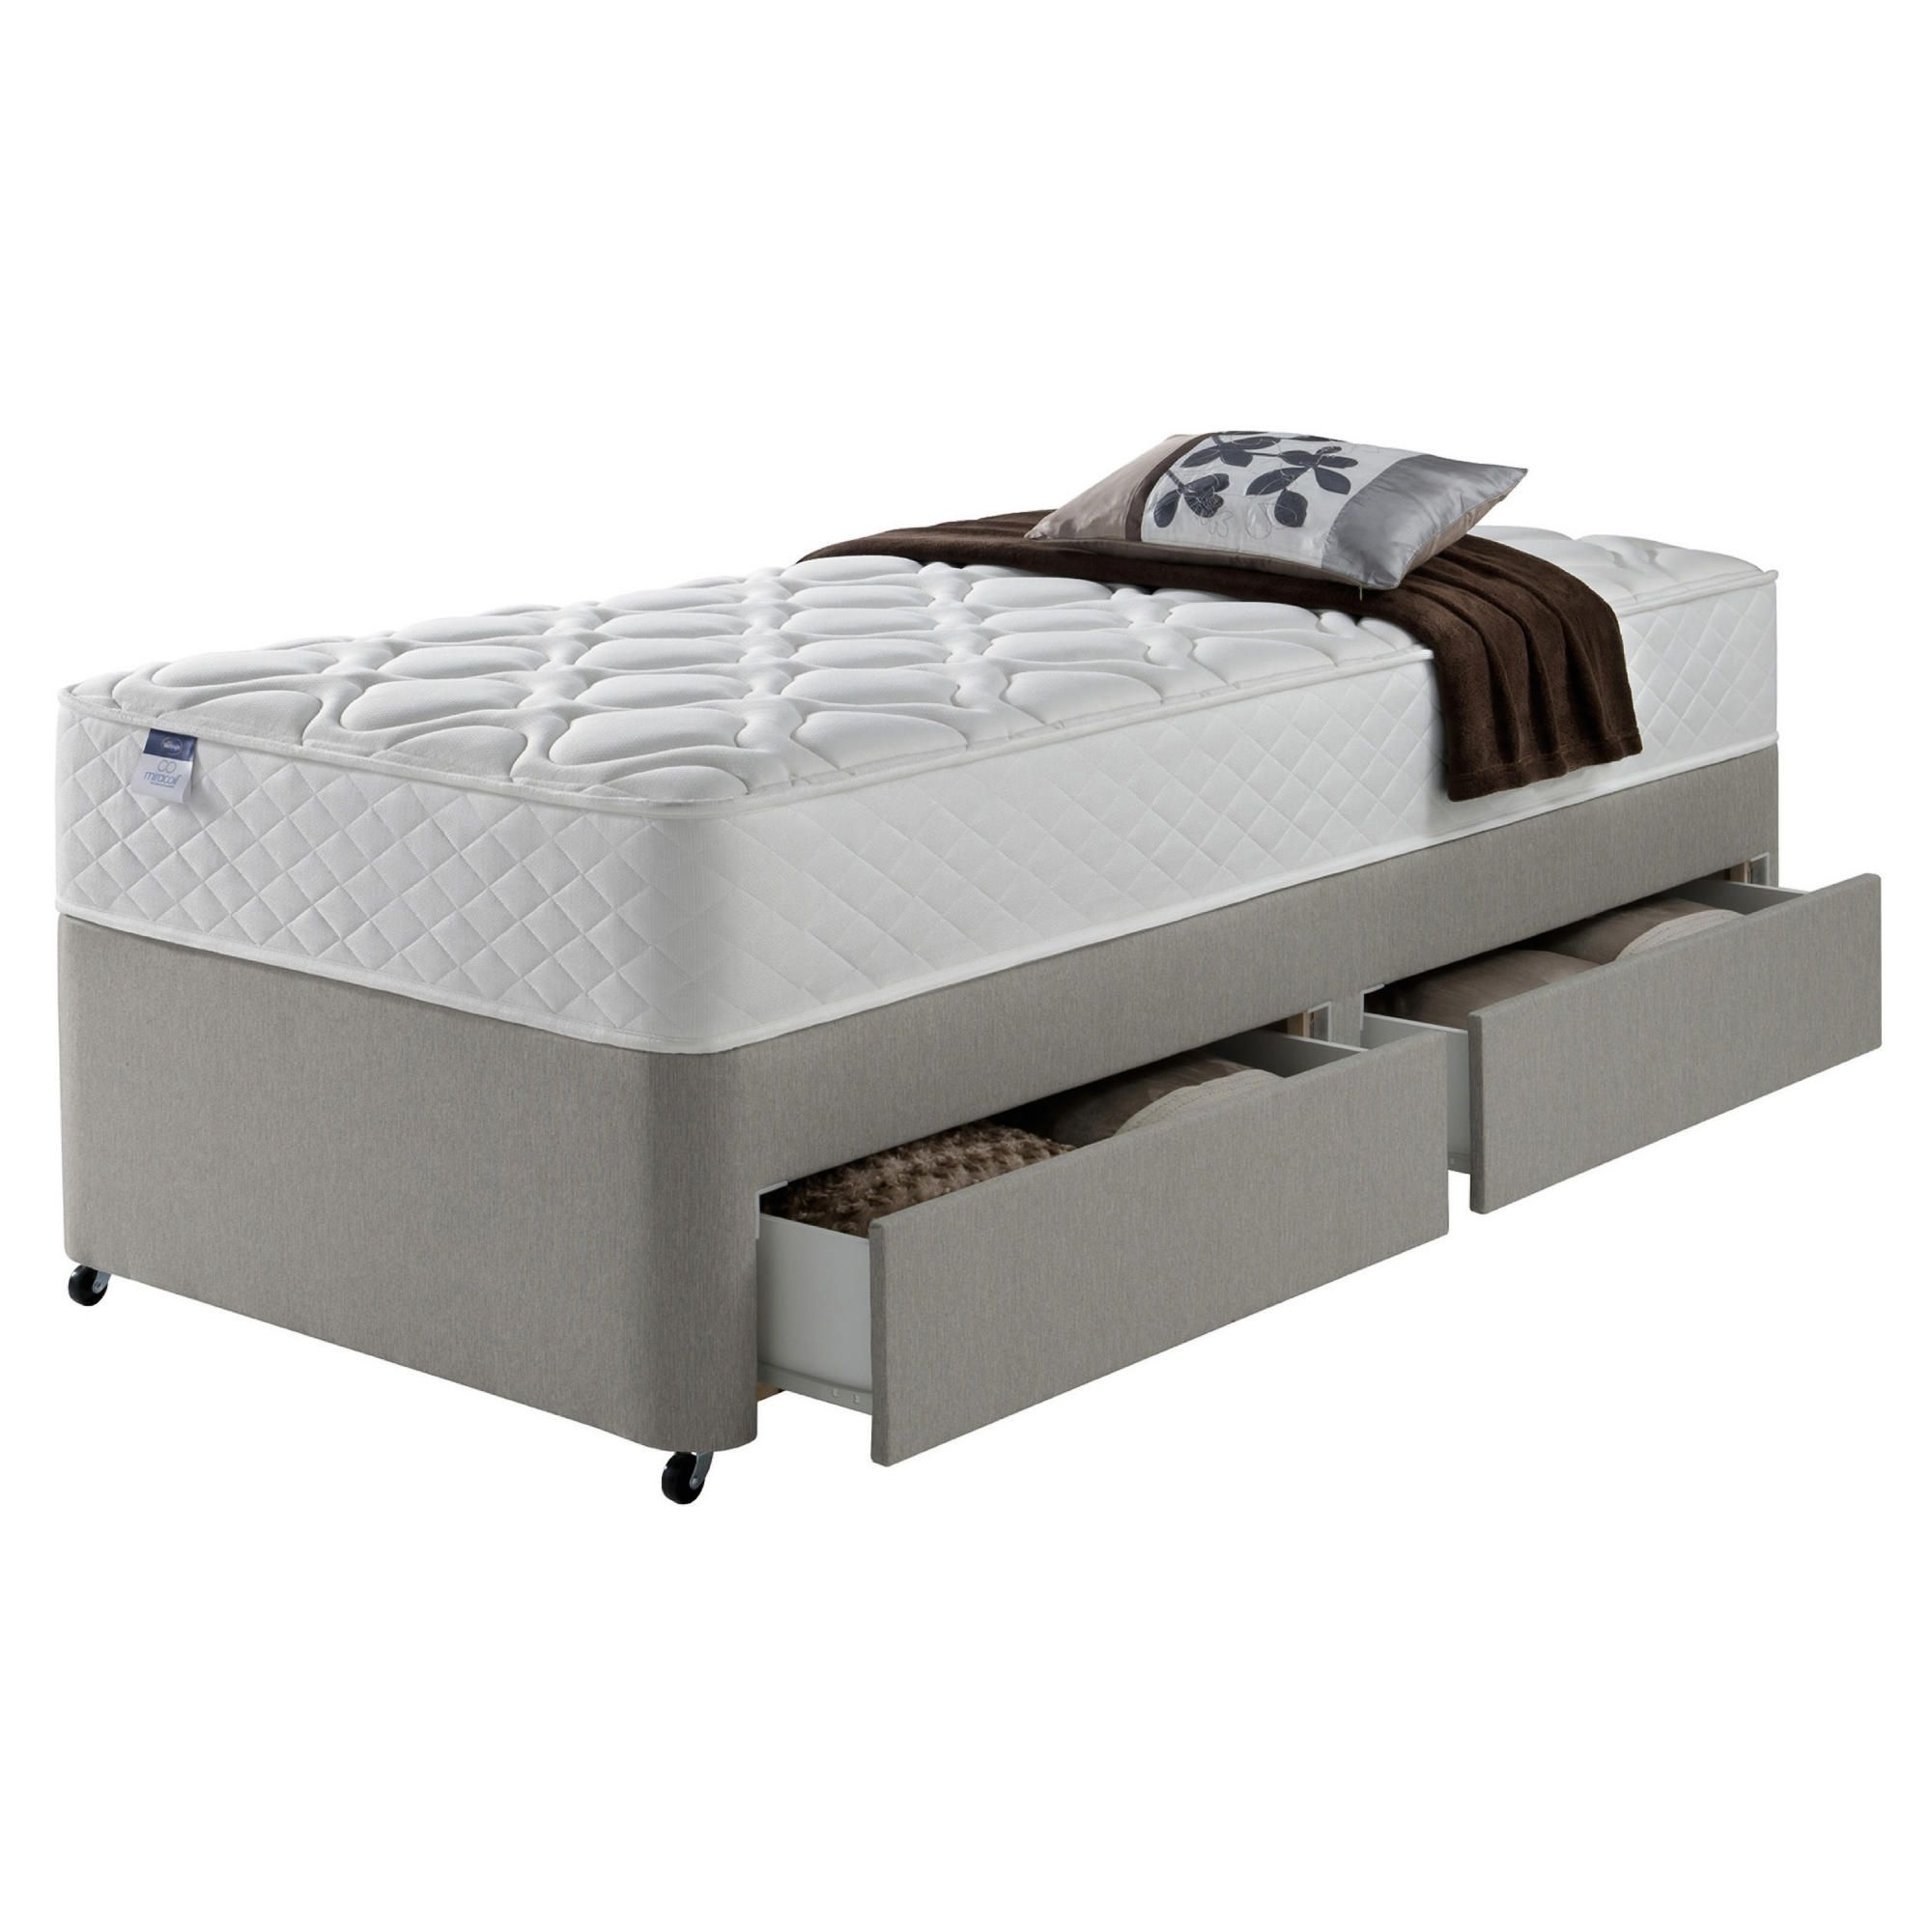 Silentnight Miracoil Luxury Micro Quilt 2 Drawer Single Divan Mink no Headboard at Tesco Direct